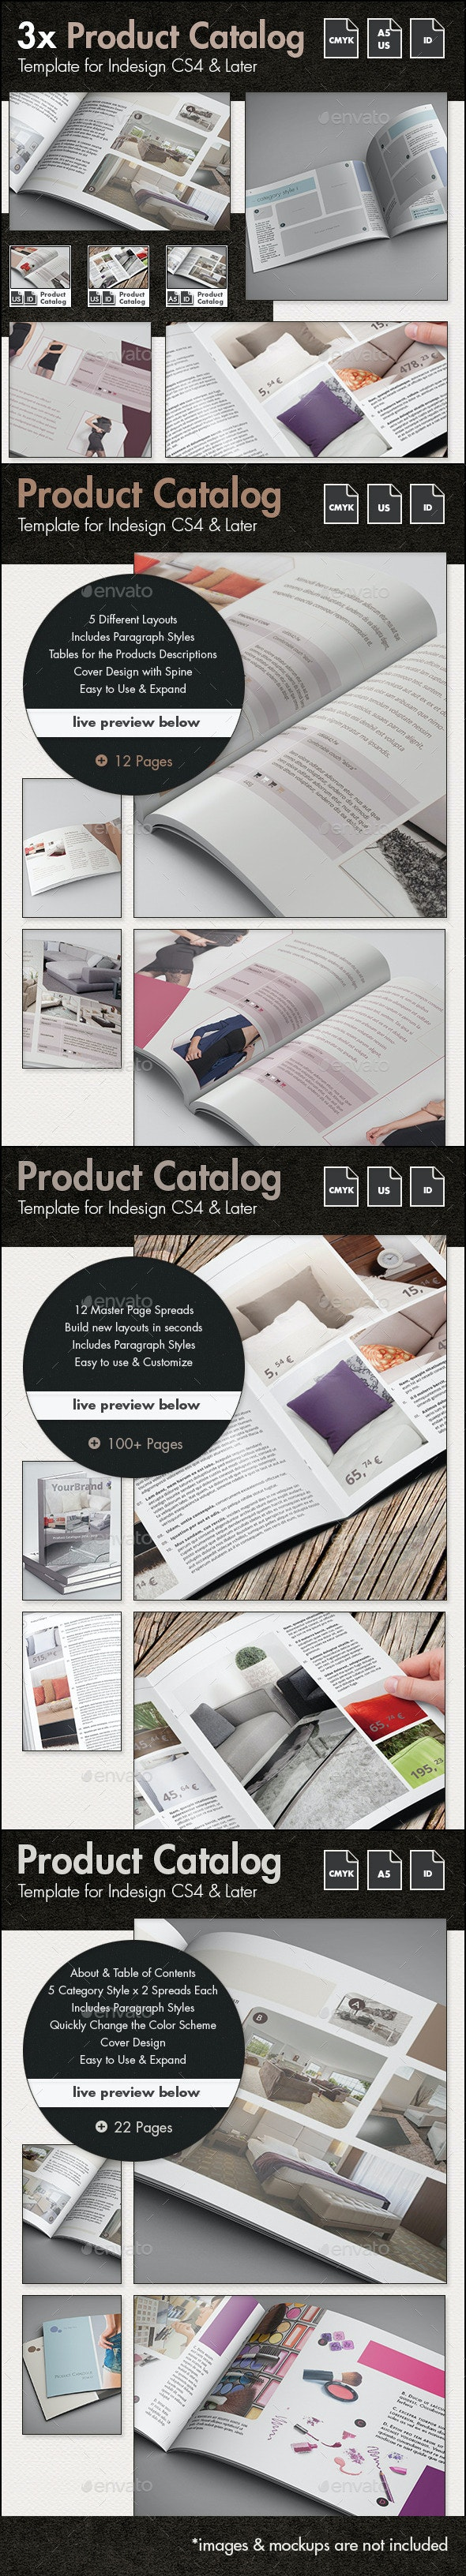 Product Catalog Template Bundle - US Letter and A5 - Catalogs Brochures